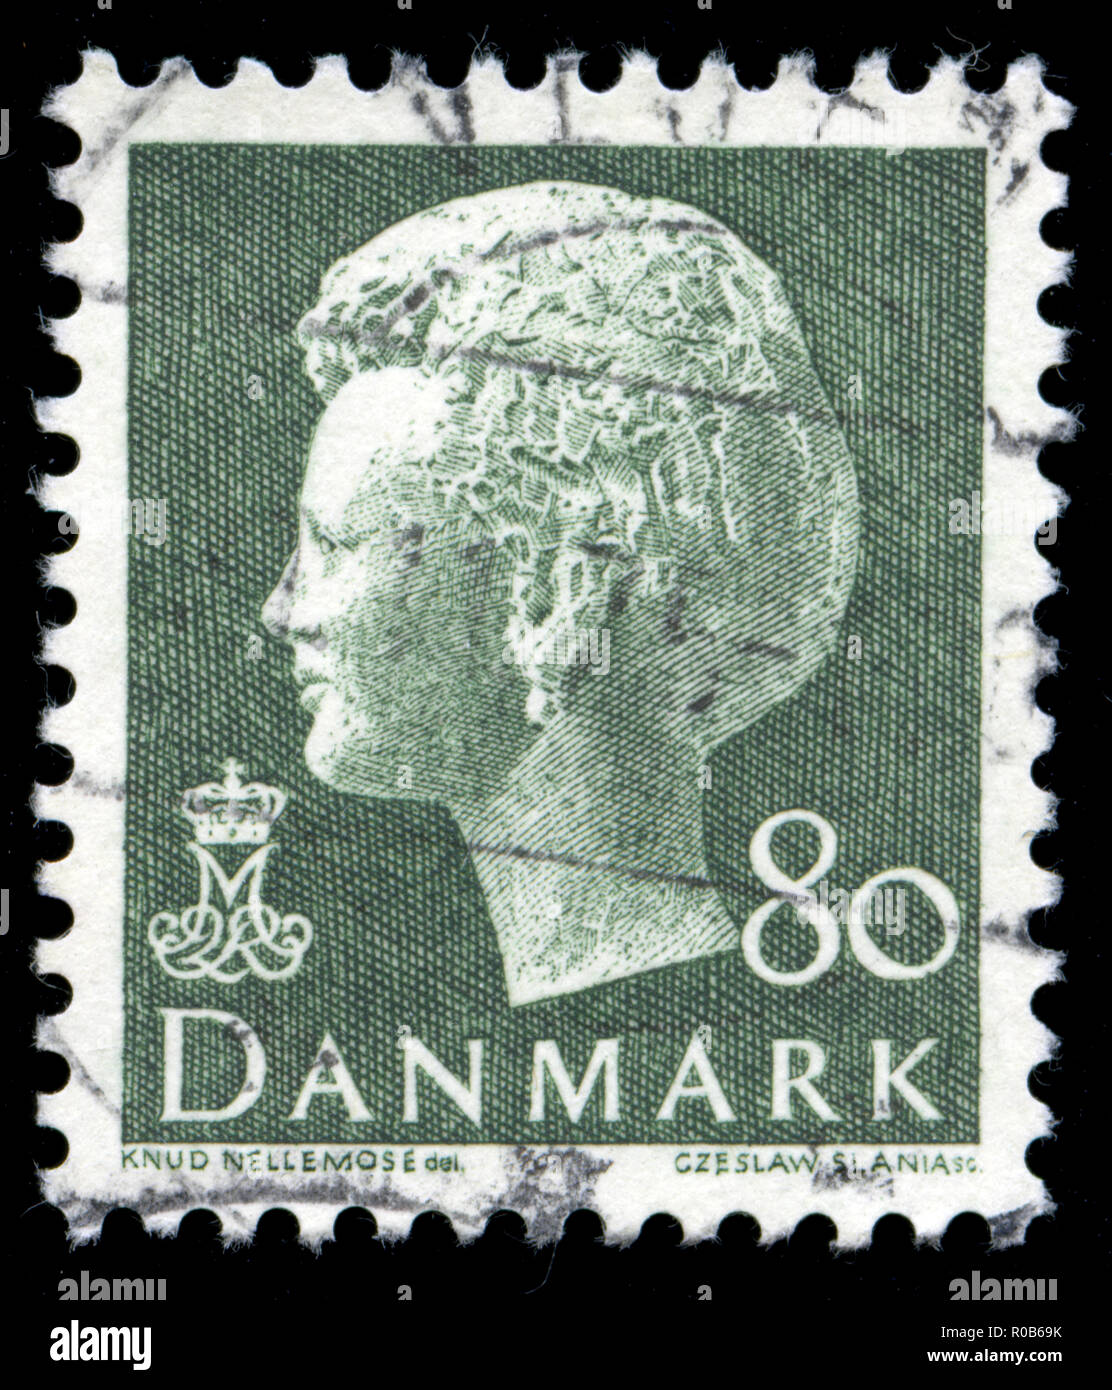 Postmarked stamp from the Denmark in the Queen Margrethe II serie 1 - Stock Image